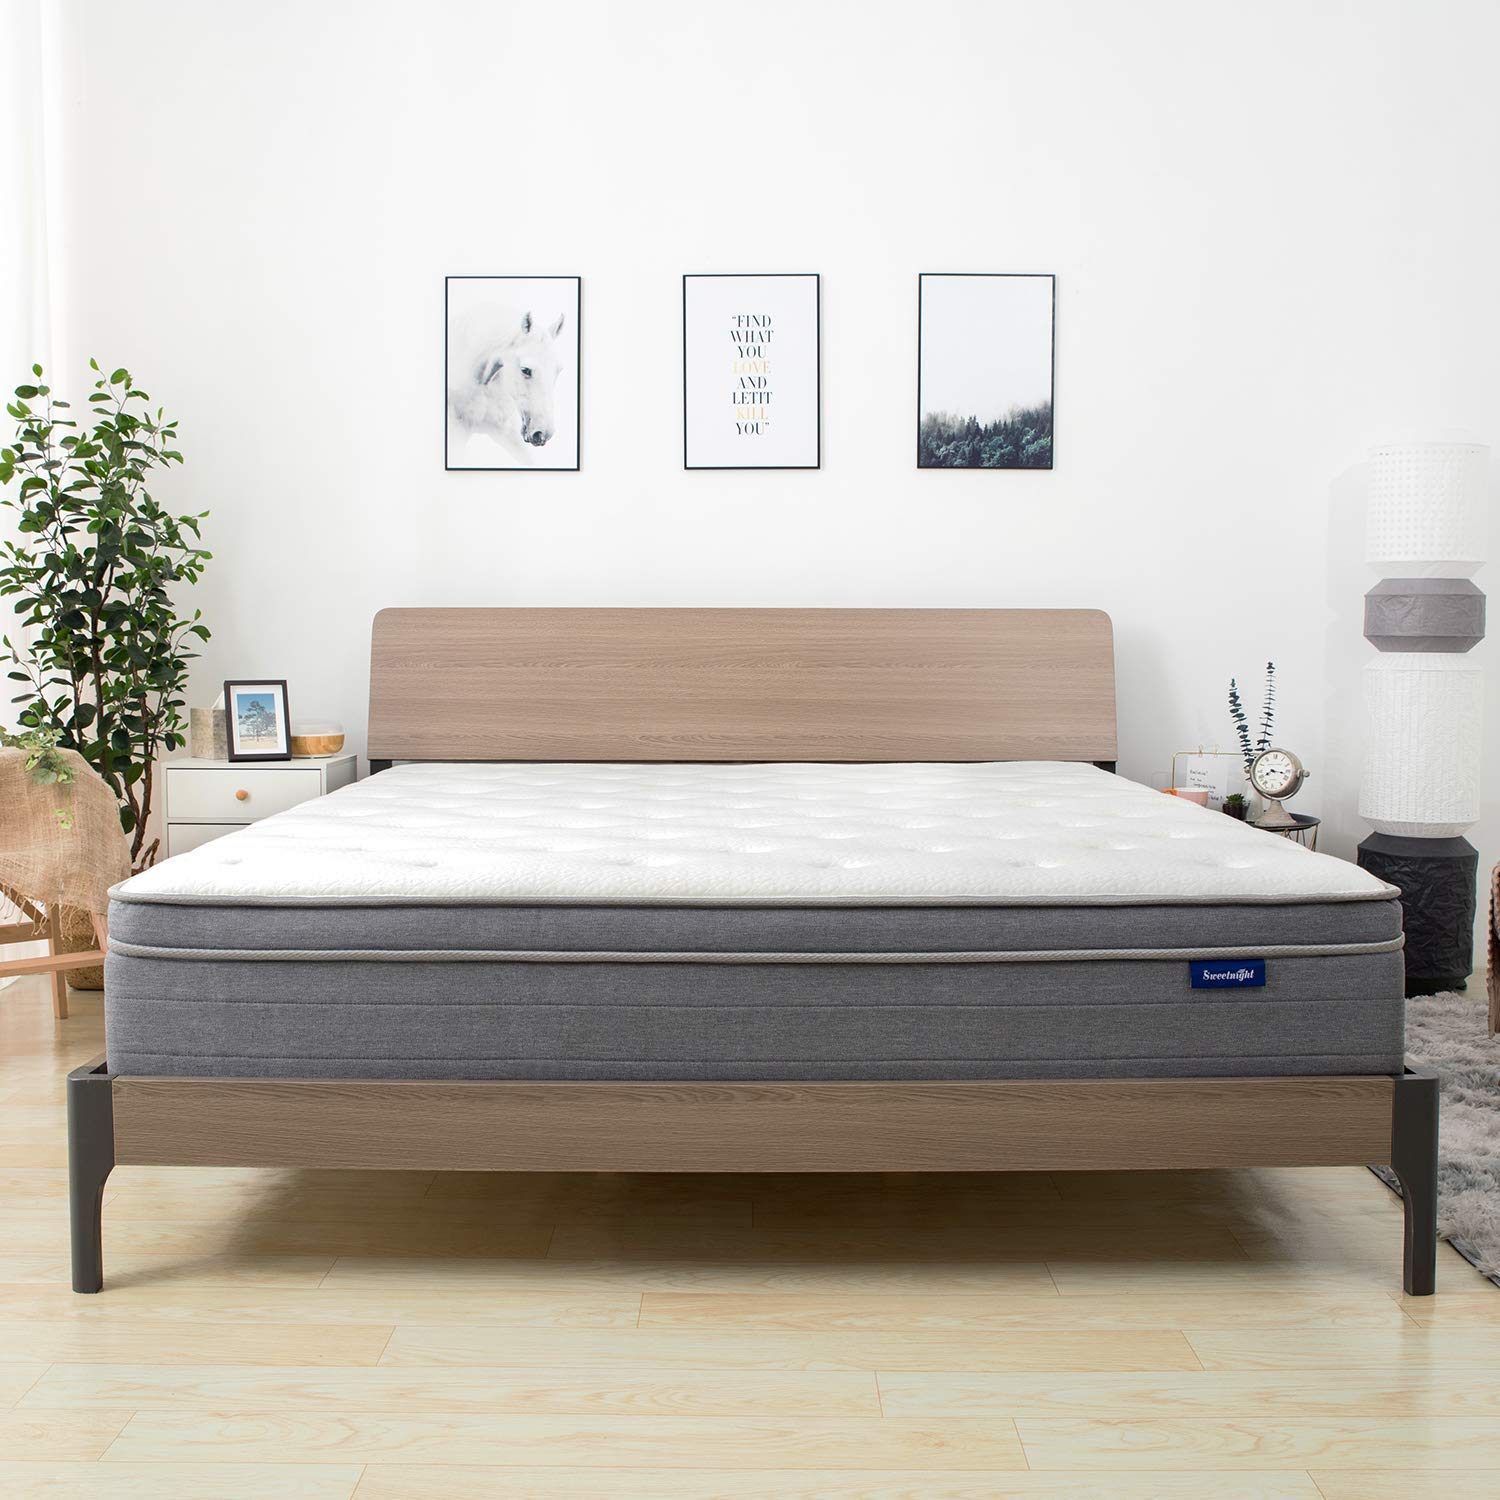 Sweetnight 10 Inch Queen Mattress In a Box - Sleep Cooler with Euro Pillow Top Gel Memory Foam, Individually Pocket Spring Hybrid Mattresses for Motion Isolation, CertiPUR-US Certified, Queen Size by Sweetnight